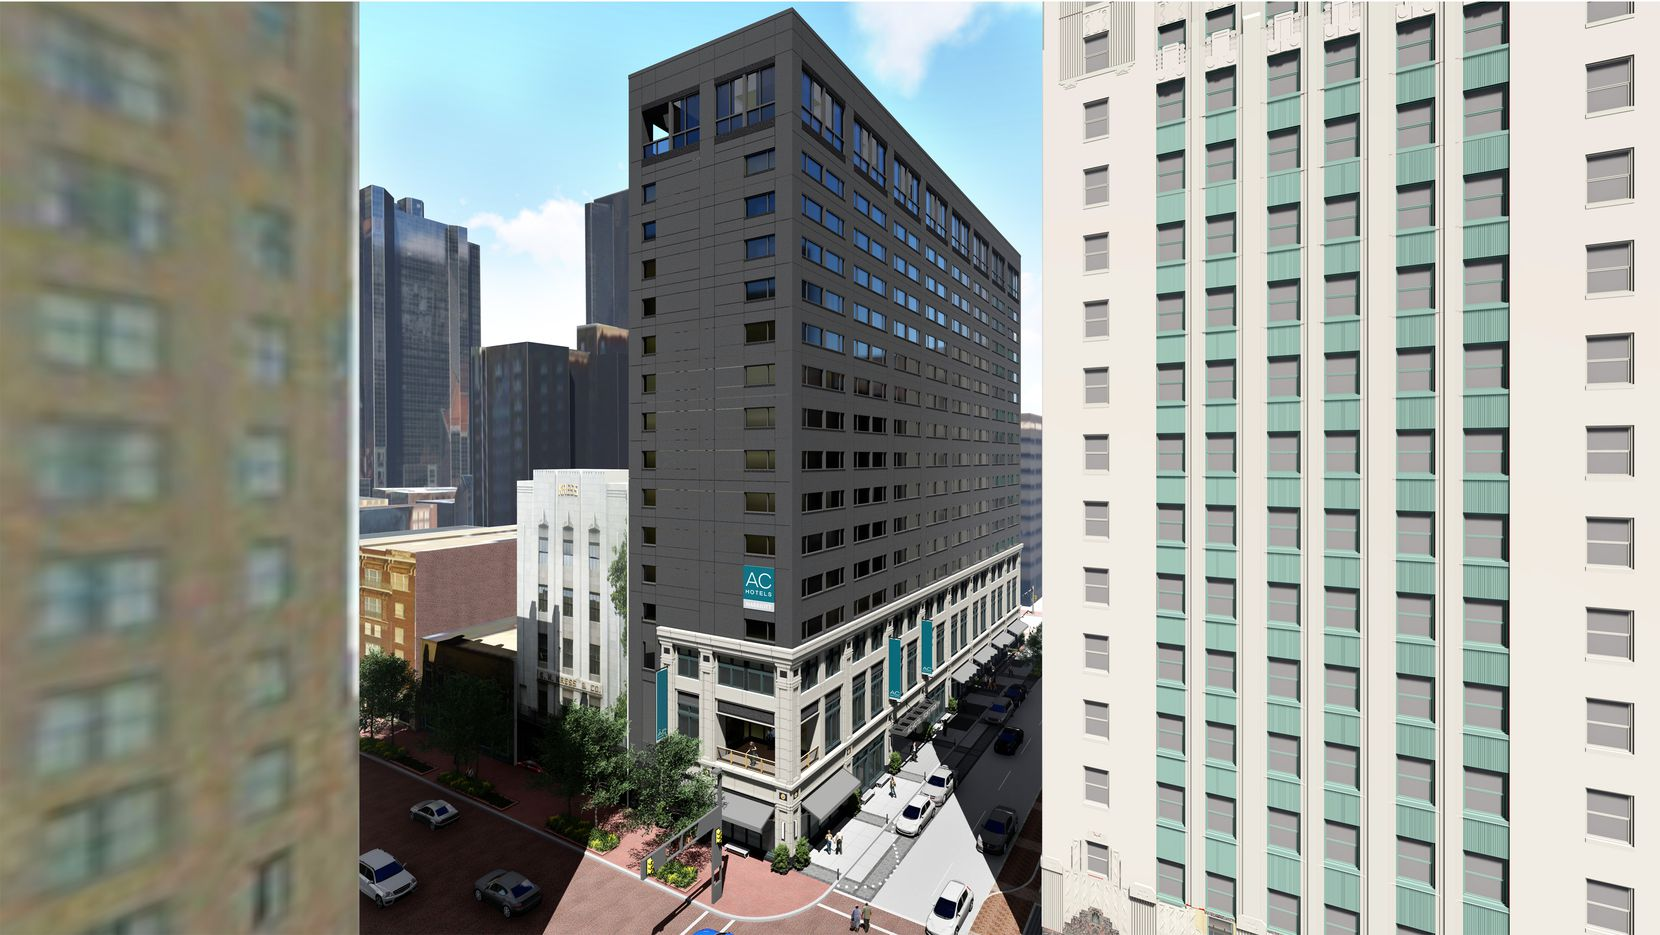 The AC Fort Worth Hotel will have 252 rooms and is planned to open late next year.